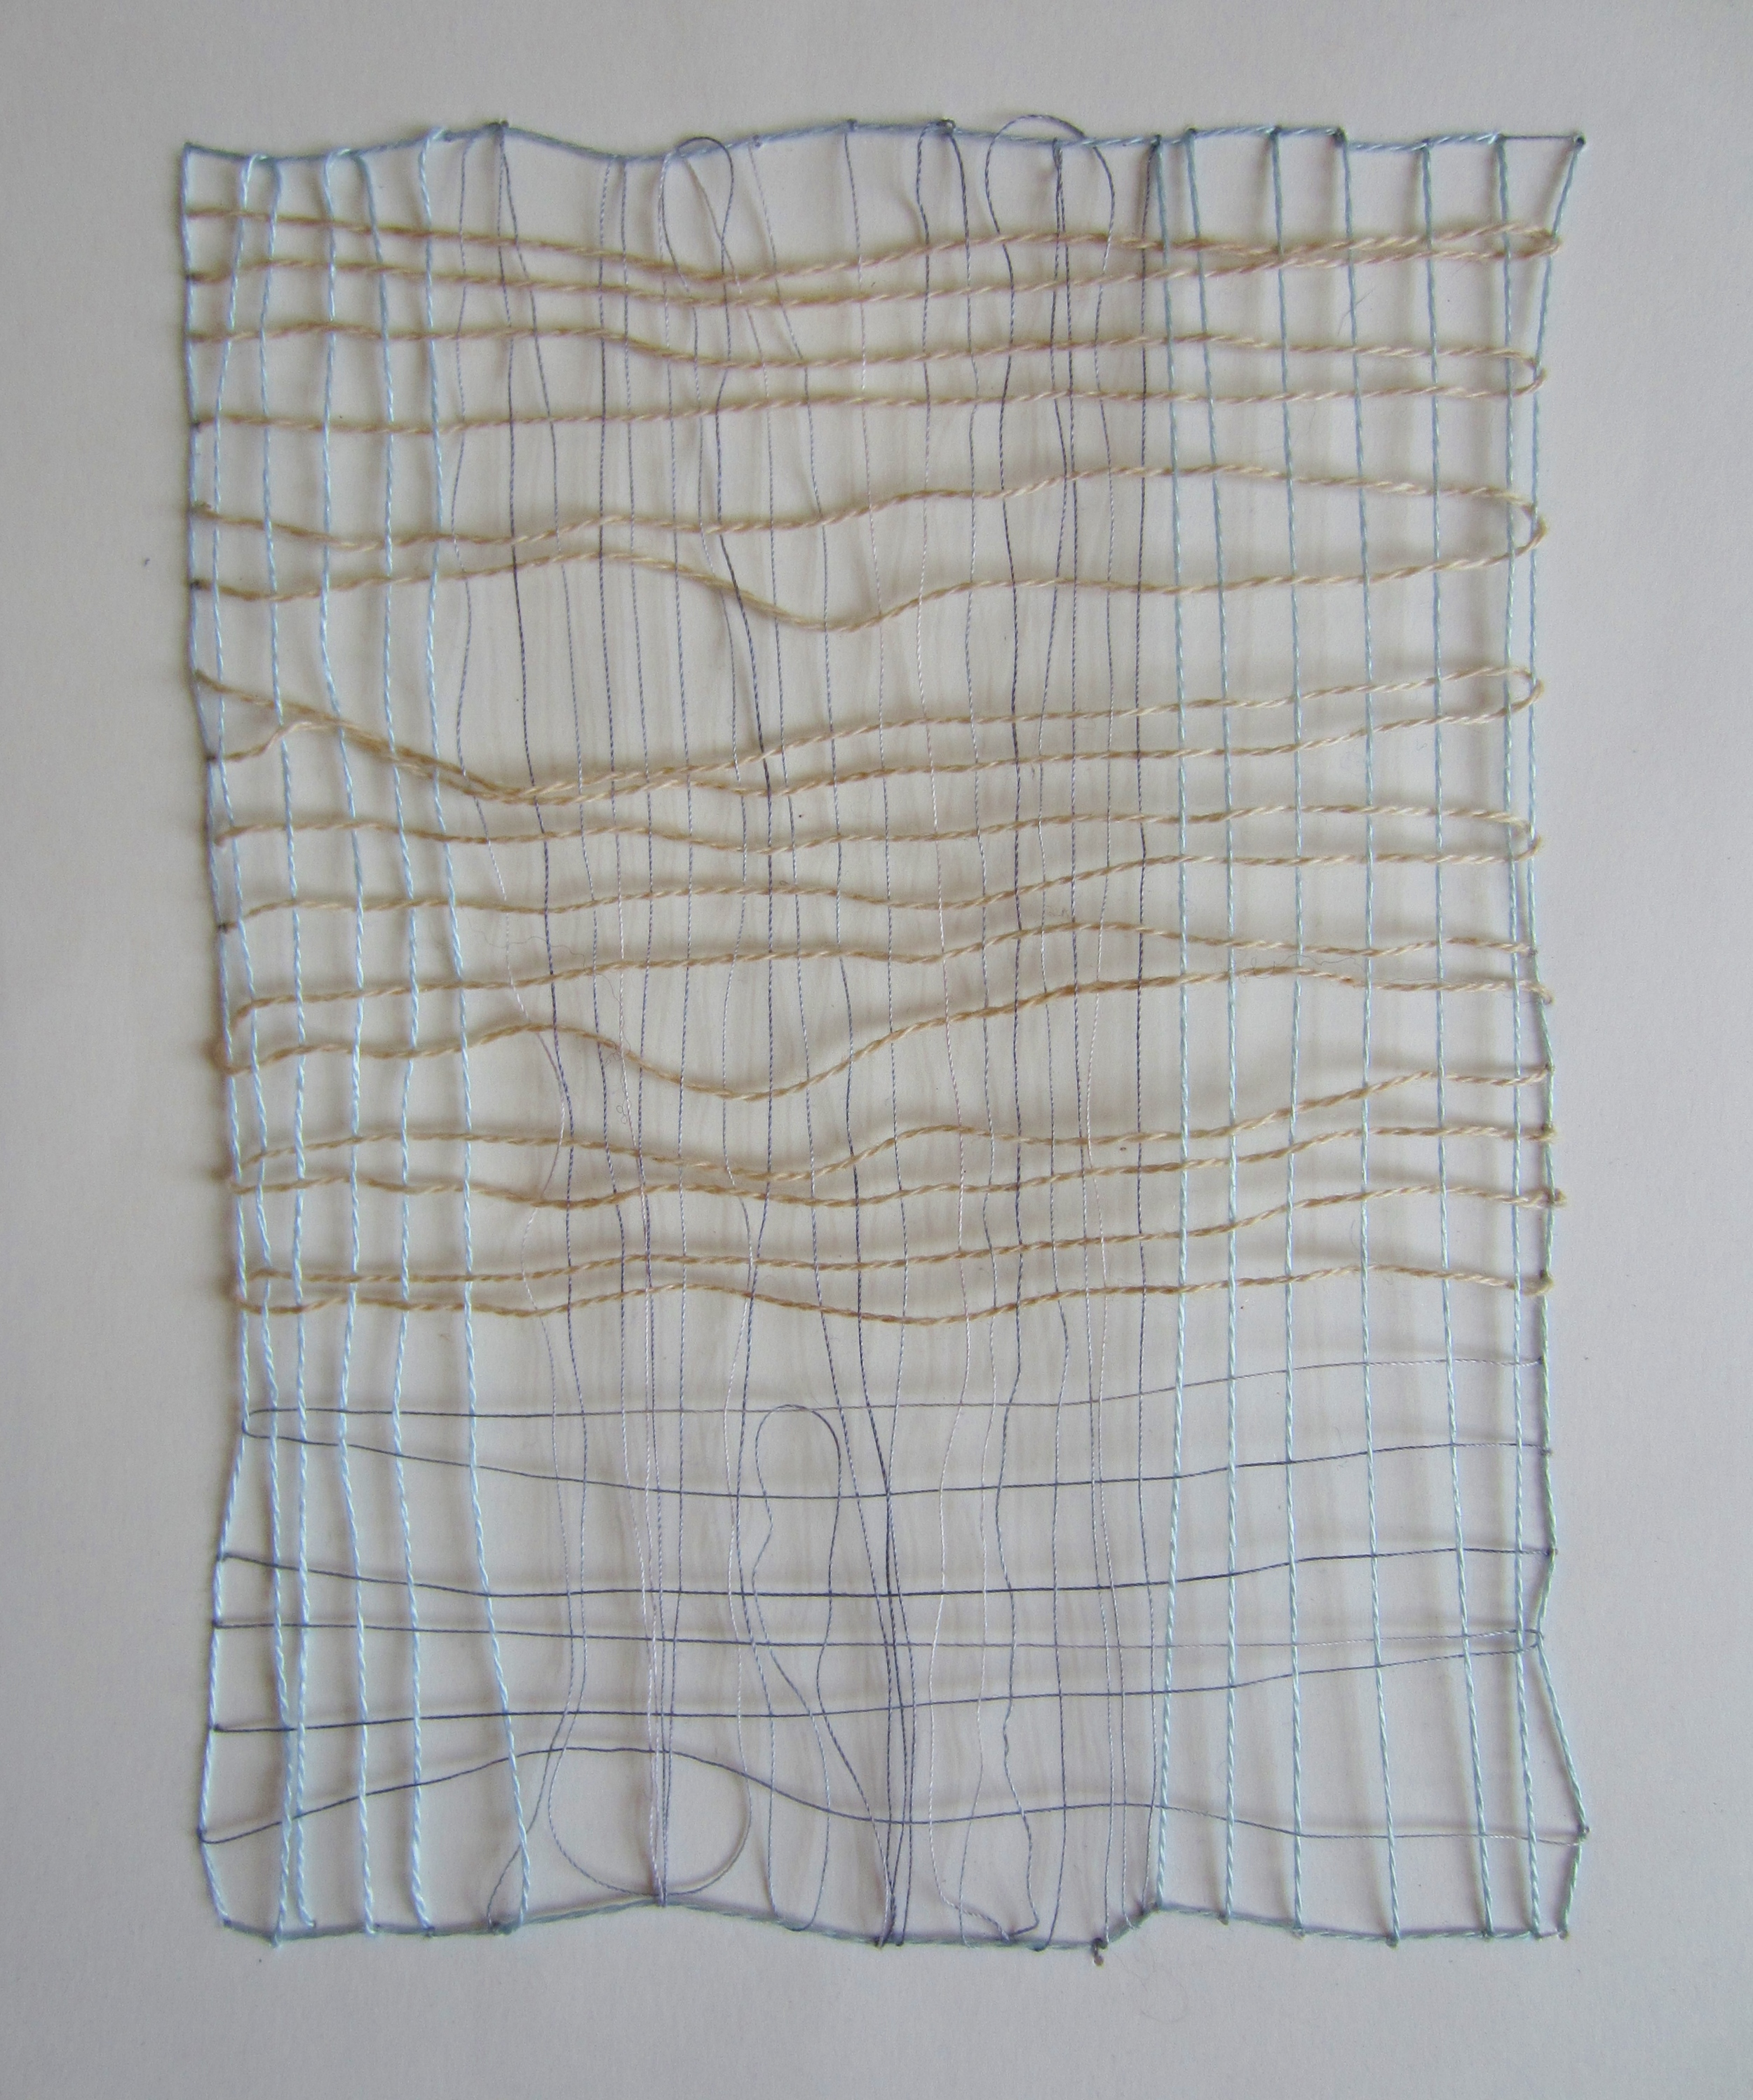 Tencel and cotton on paper, 2015